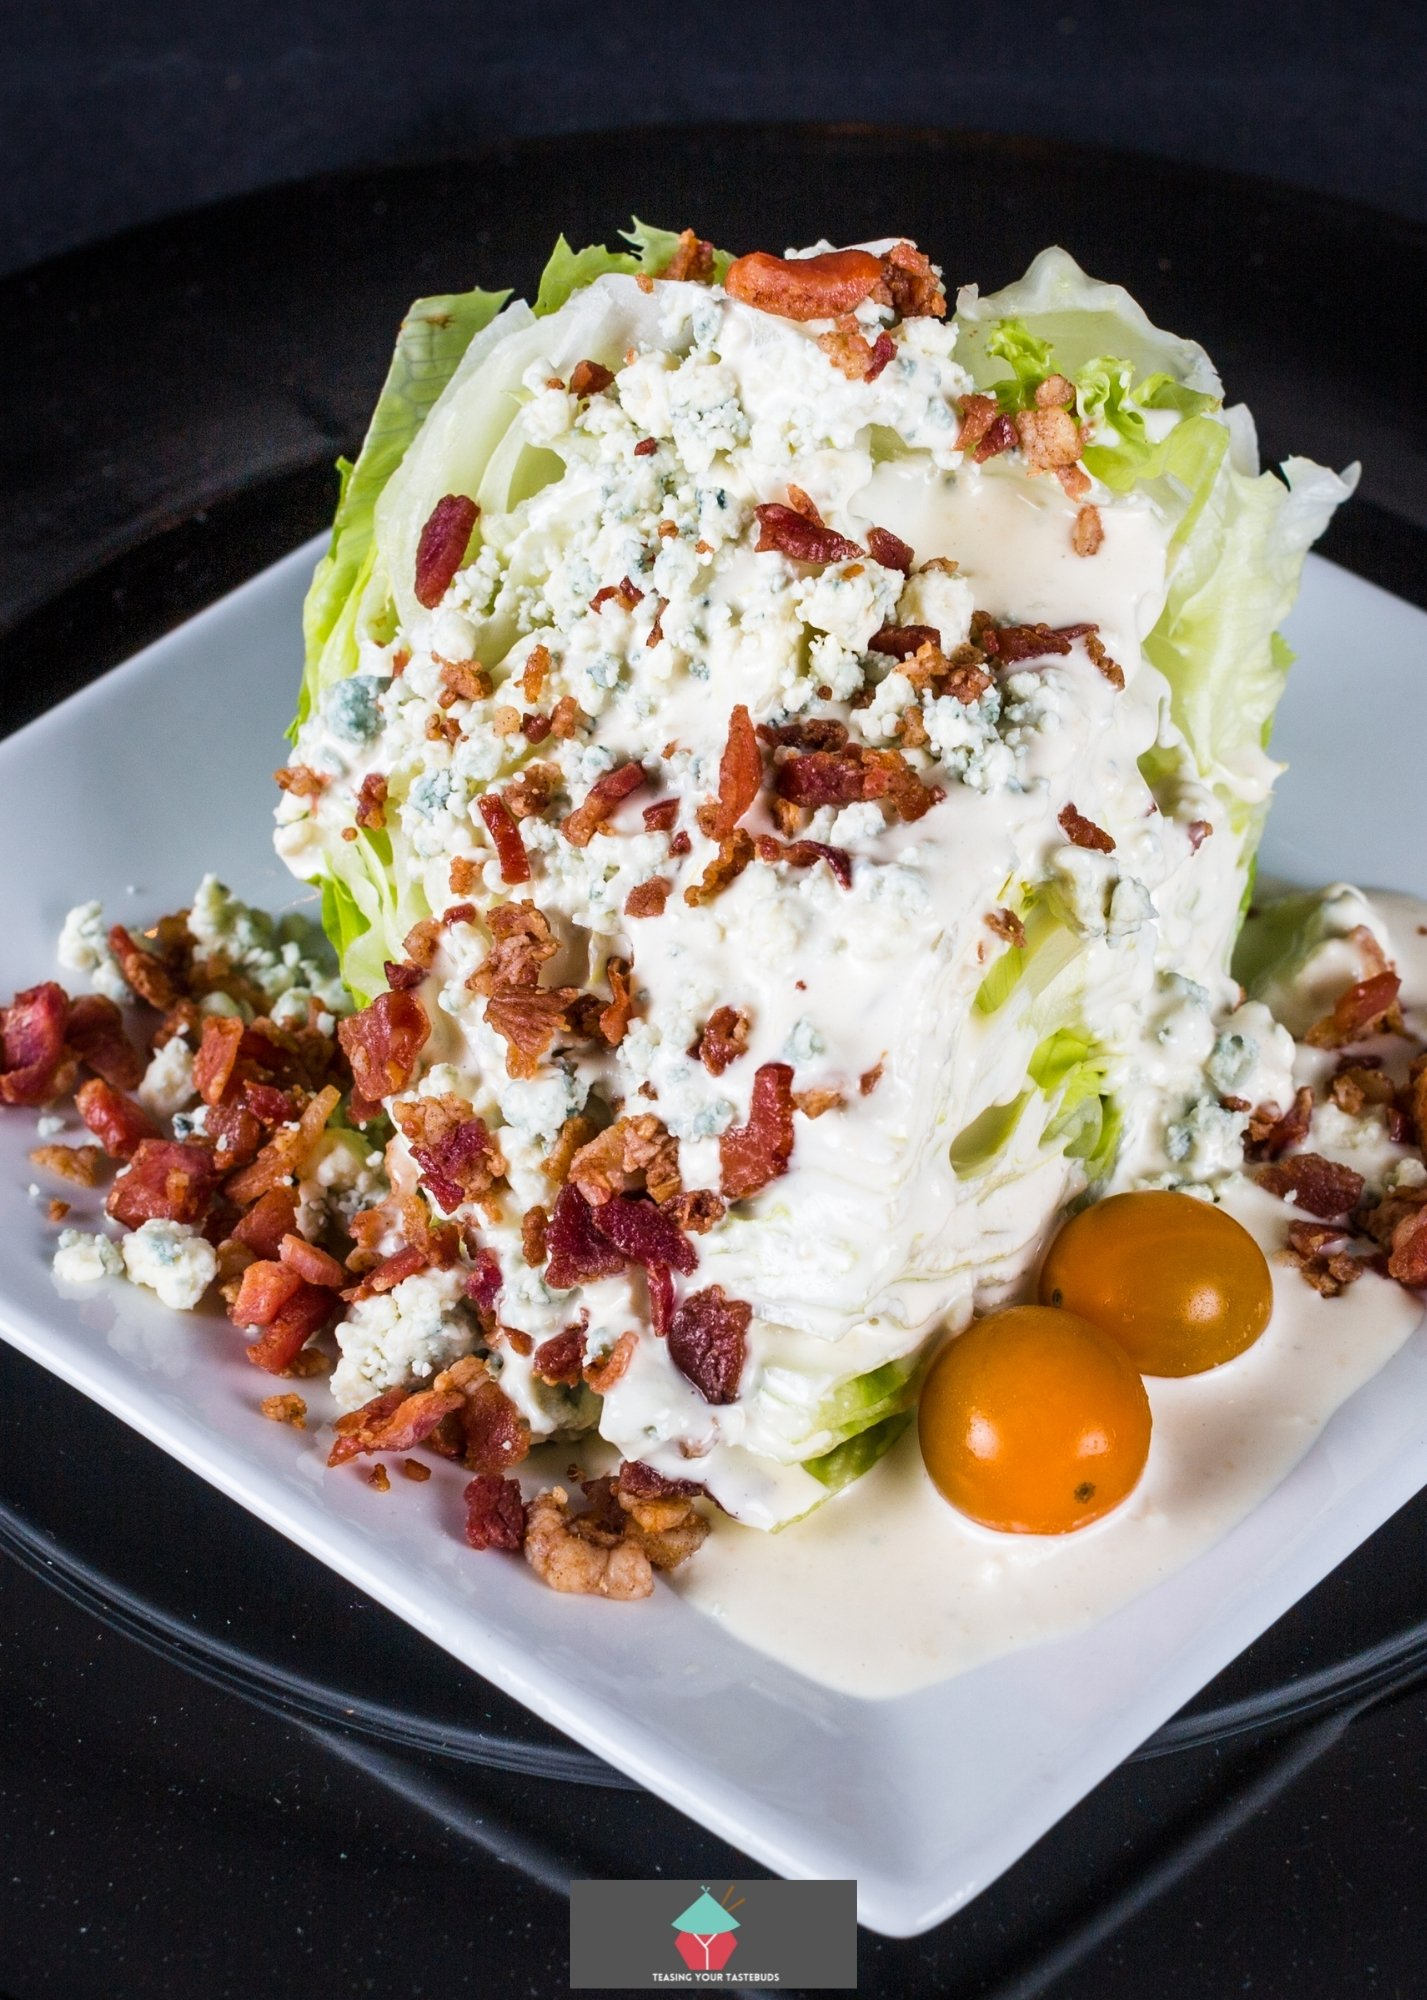 Nanny's VERY Easy Bleu Cheese Salad Dressing, added to iceberg lettuce wedge